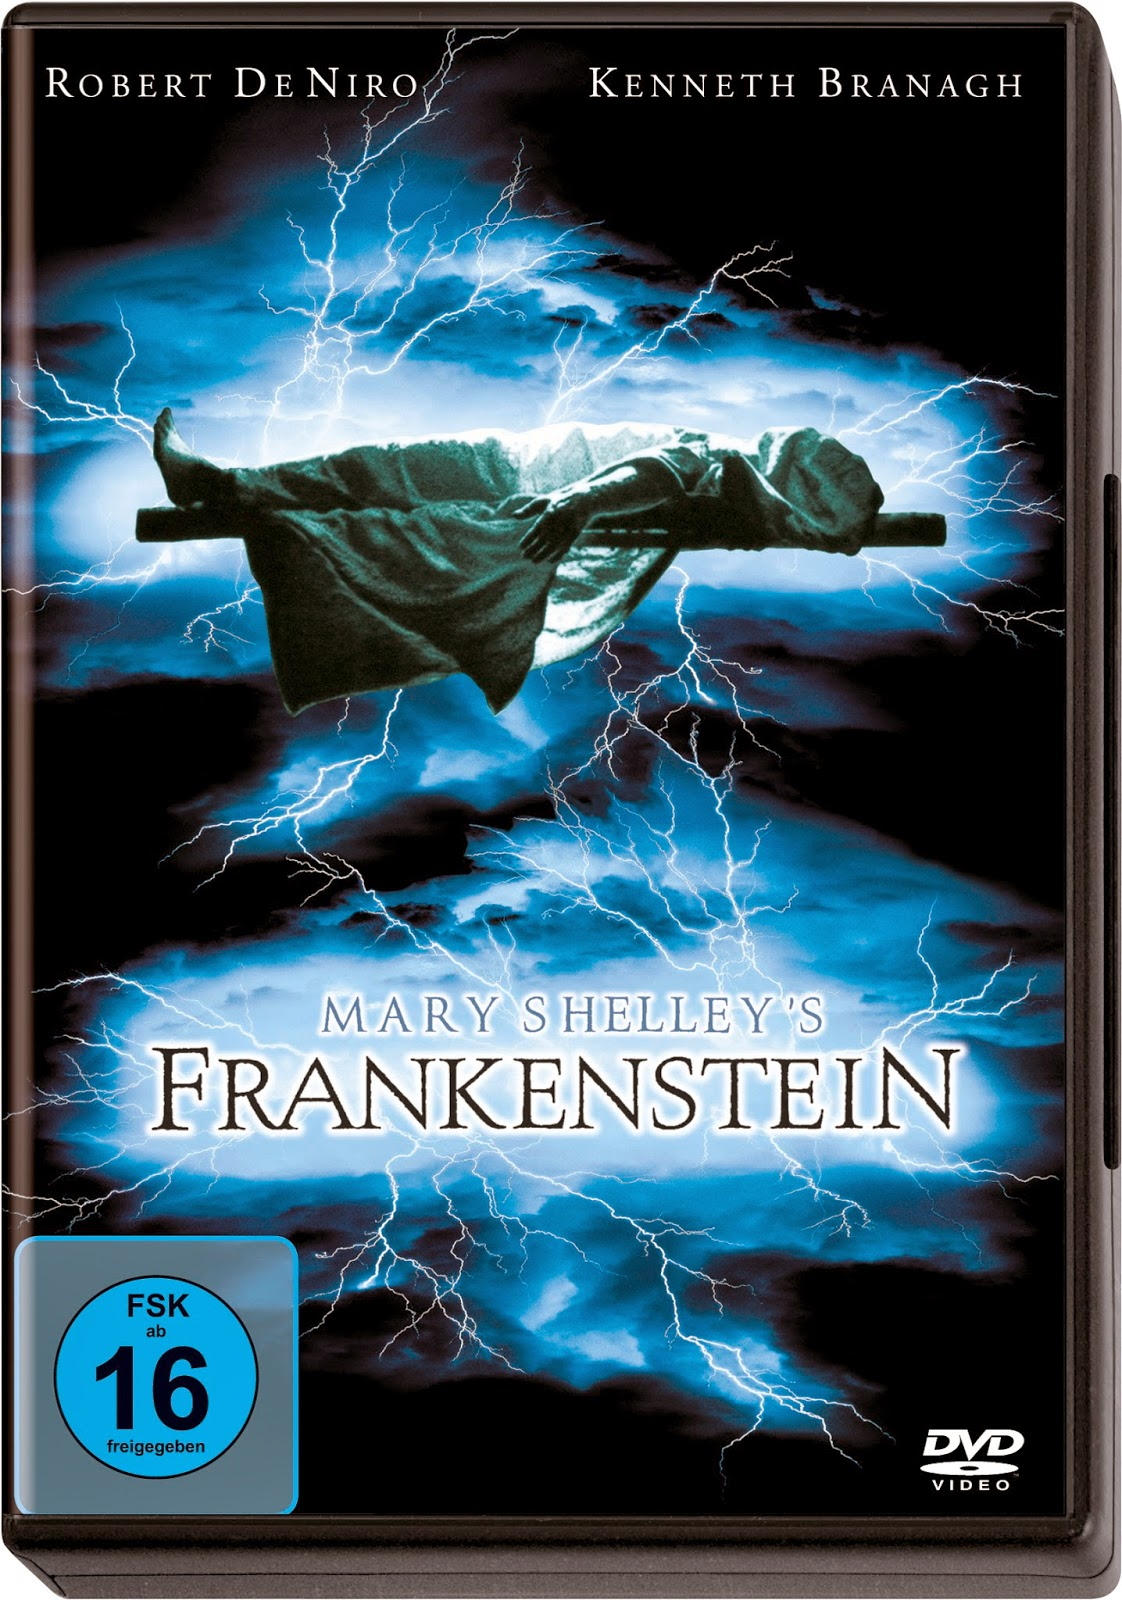 an analysis of the film mary shelleys frankenstein by kenneth branaghs Responses to and adaptations of frankenstein in film and elsewhere  mary shelley's 'frankenstein' (1994) kenneth branagh's modern take on the novel,.